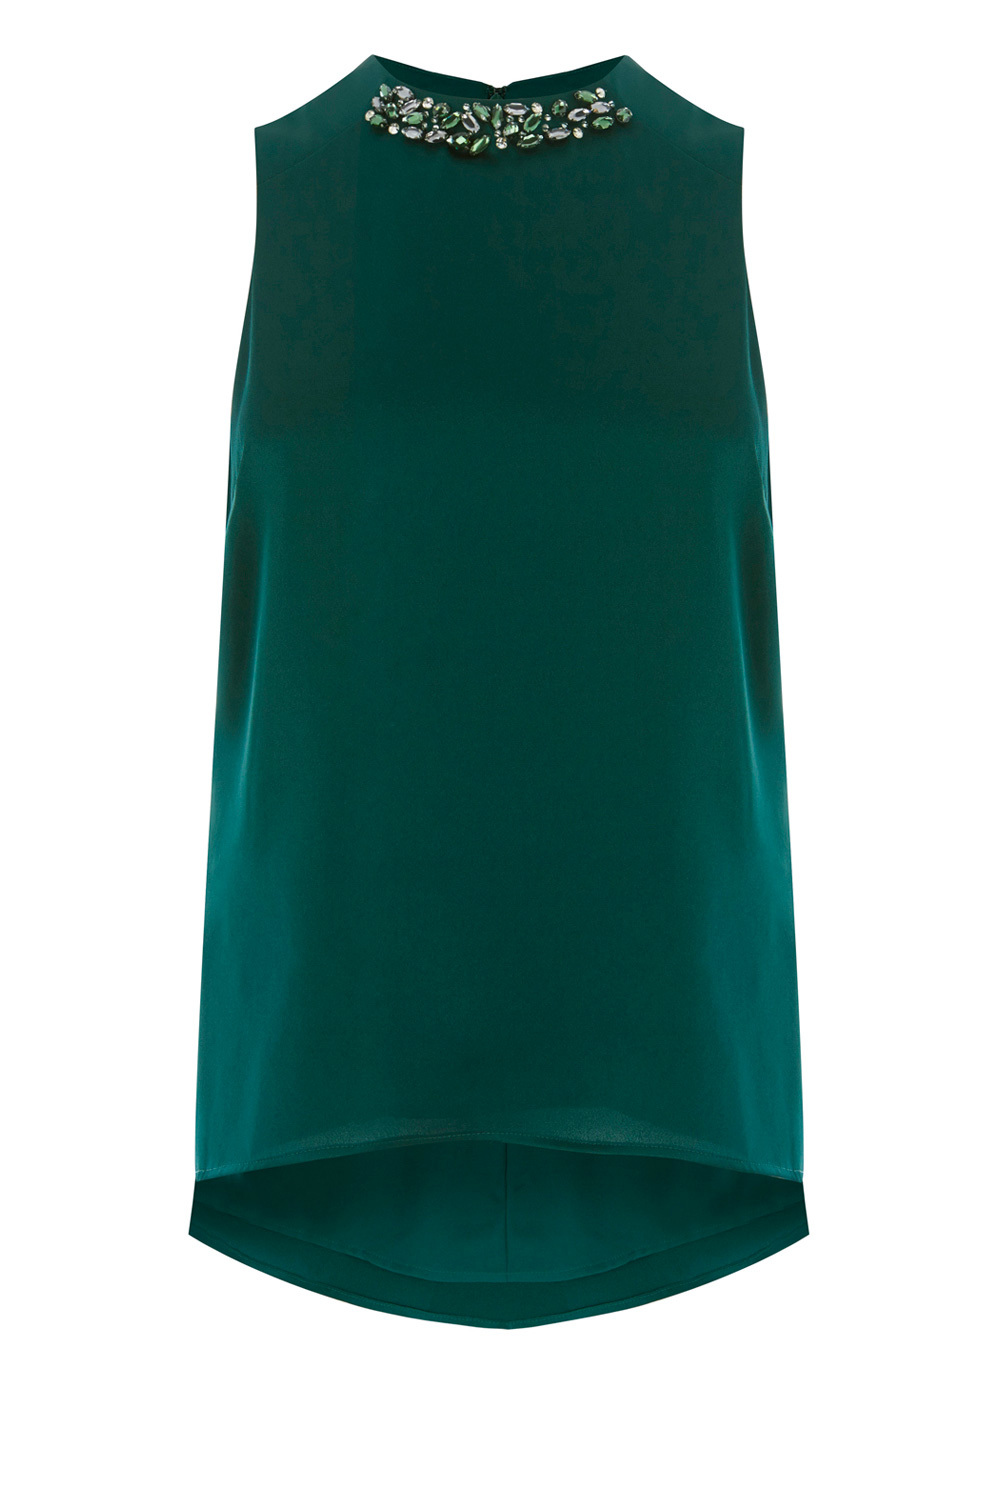 Katerina Tunic Top - pattern: plain; sleeve style: sleeveless; length: below the bottom; style: tunic; predominant colour: dark green; occasions: evening; fibres: polyester/polyamide - 100%; fit: body skimming; neckline: crew; sleeve length: sleeveless; texture group: crepes; pattern type: fabric; embellishment: jewels/stone; season: a/w 2016; wardrobe: event; embellishment location: bust